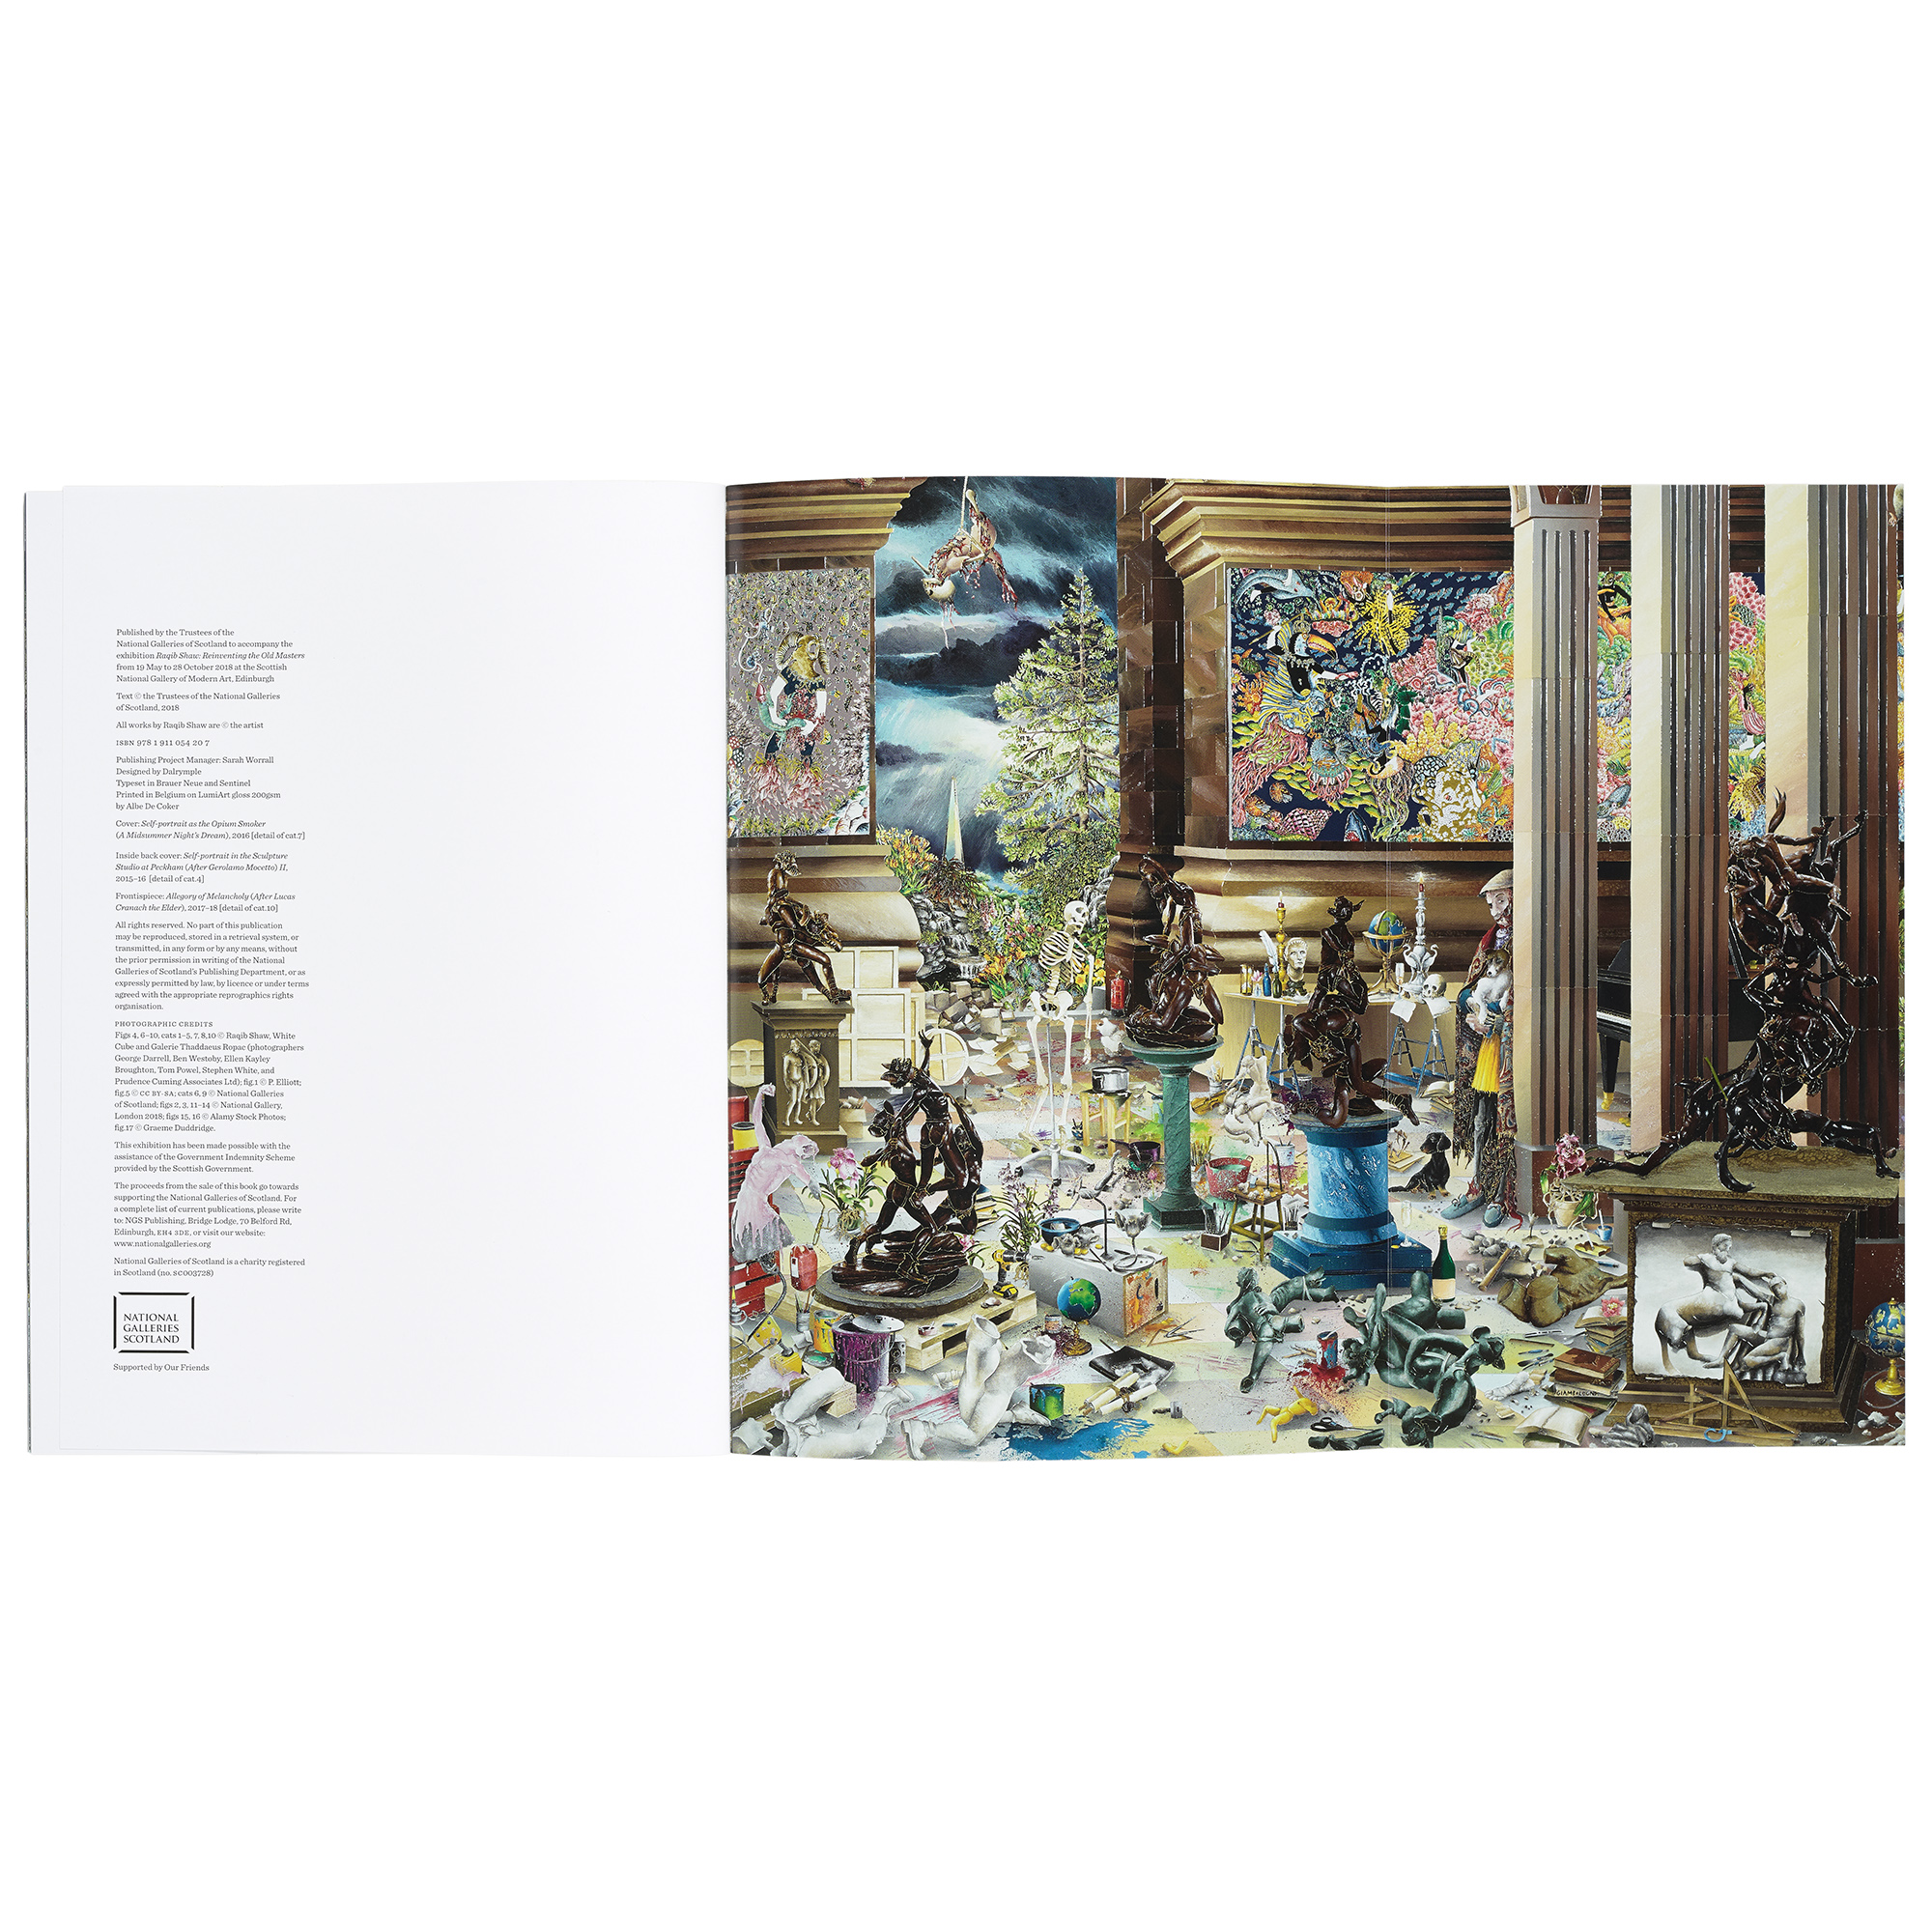 Raqib Shaw | Reinventing the Old Masters exhibition book